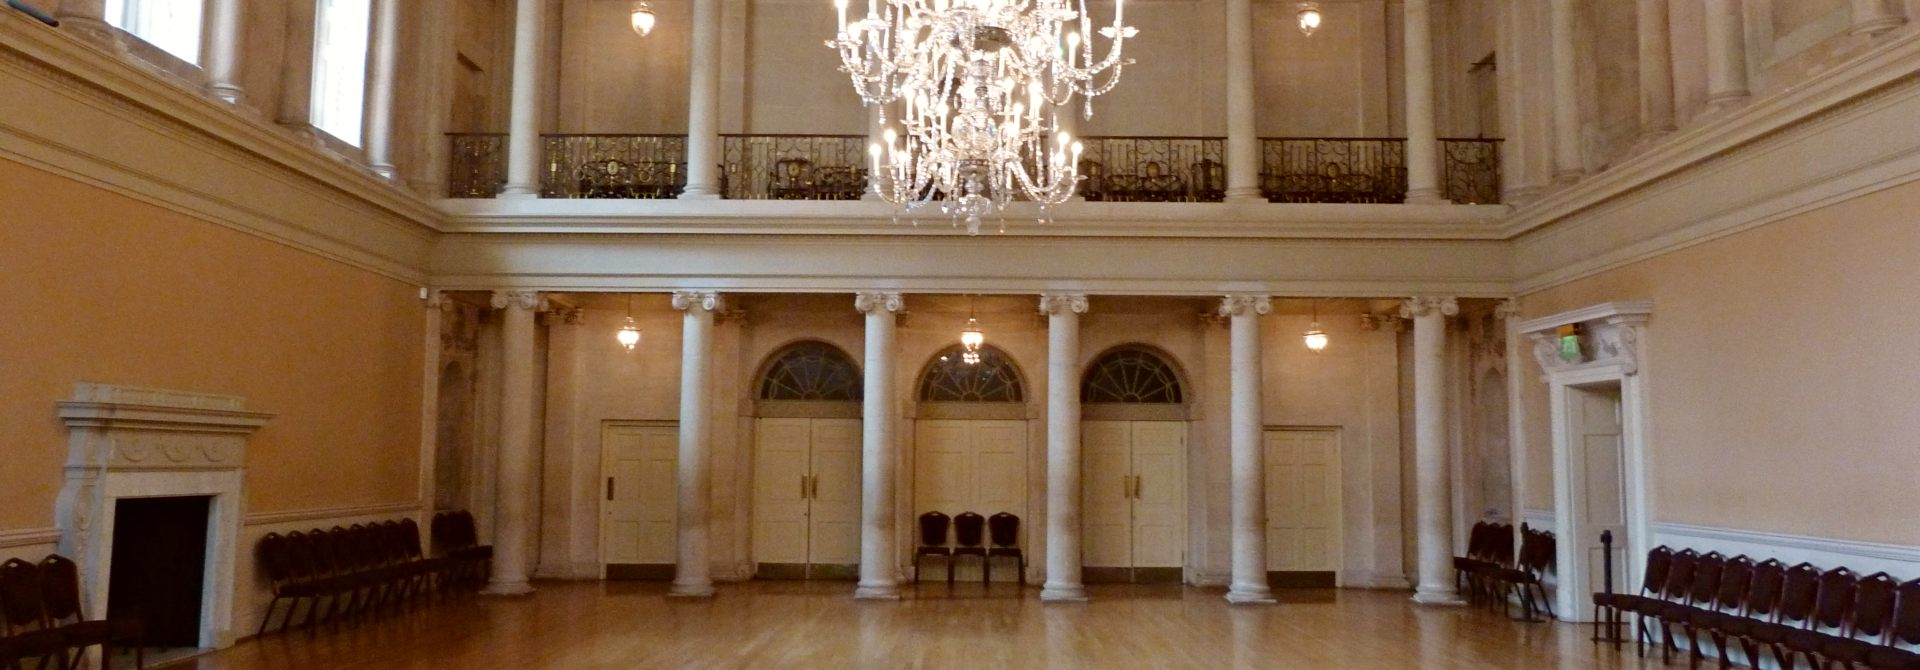 Bath Assembly Rooms Header